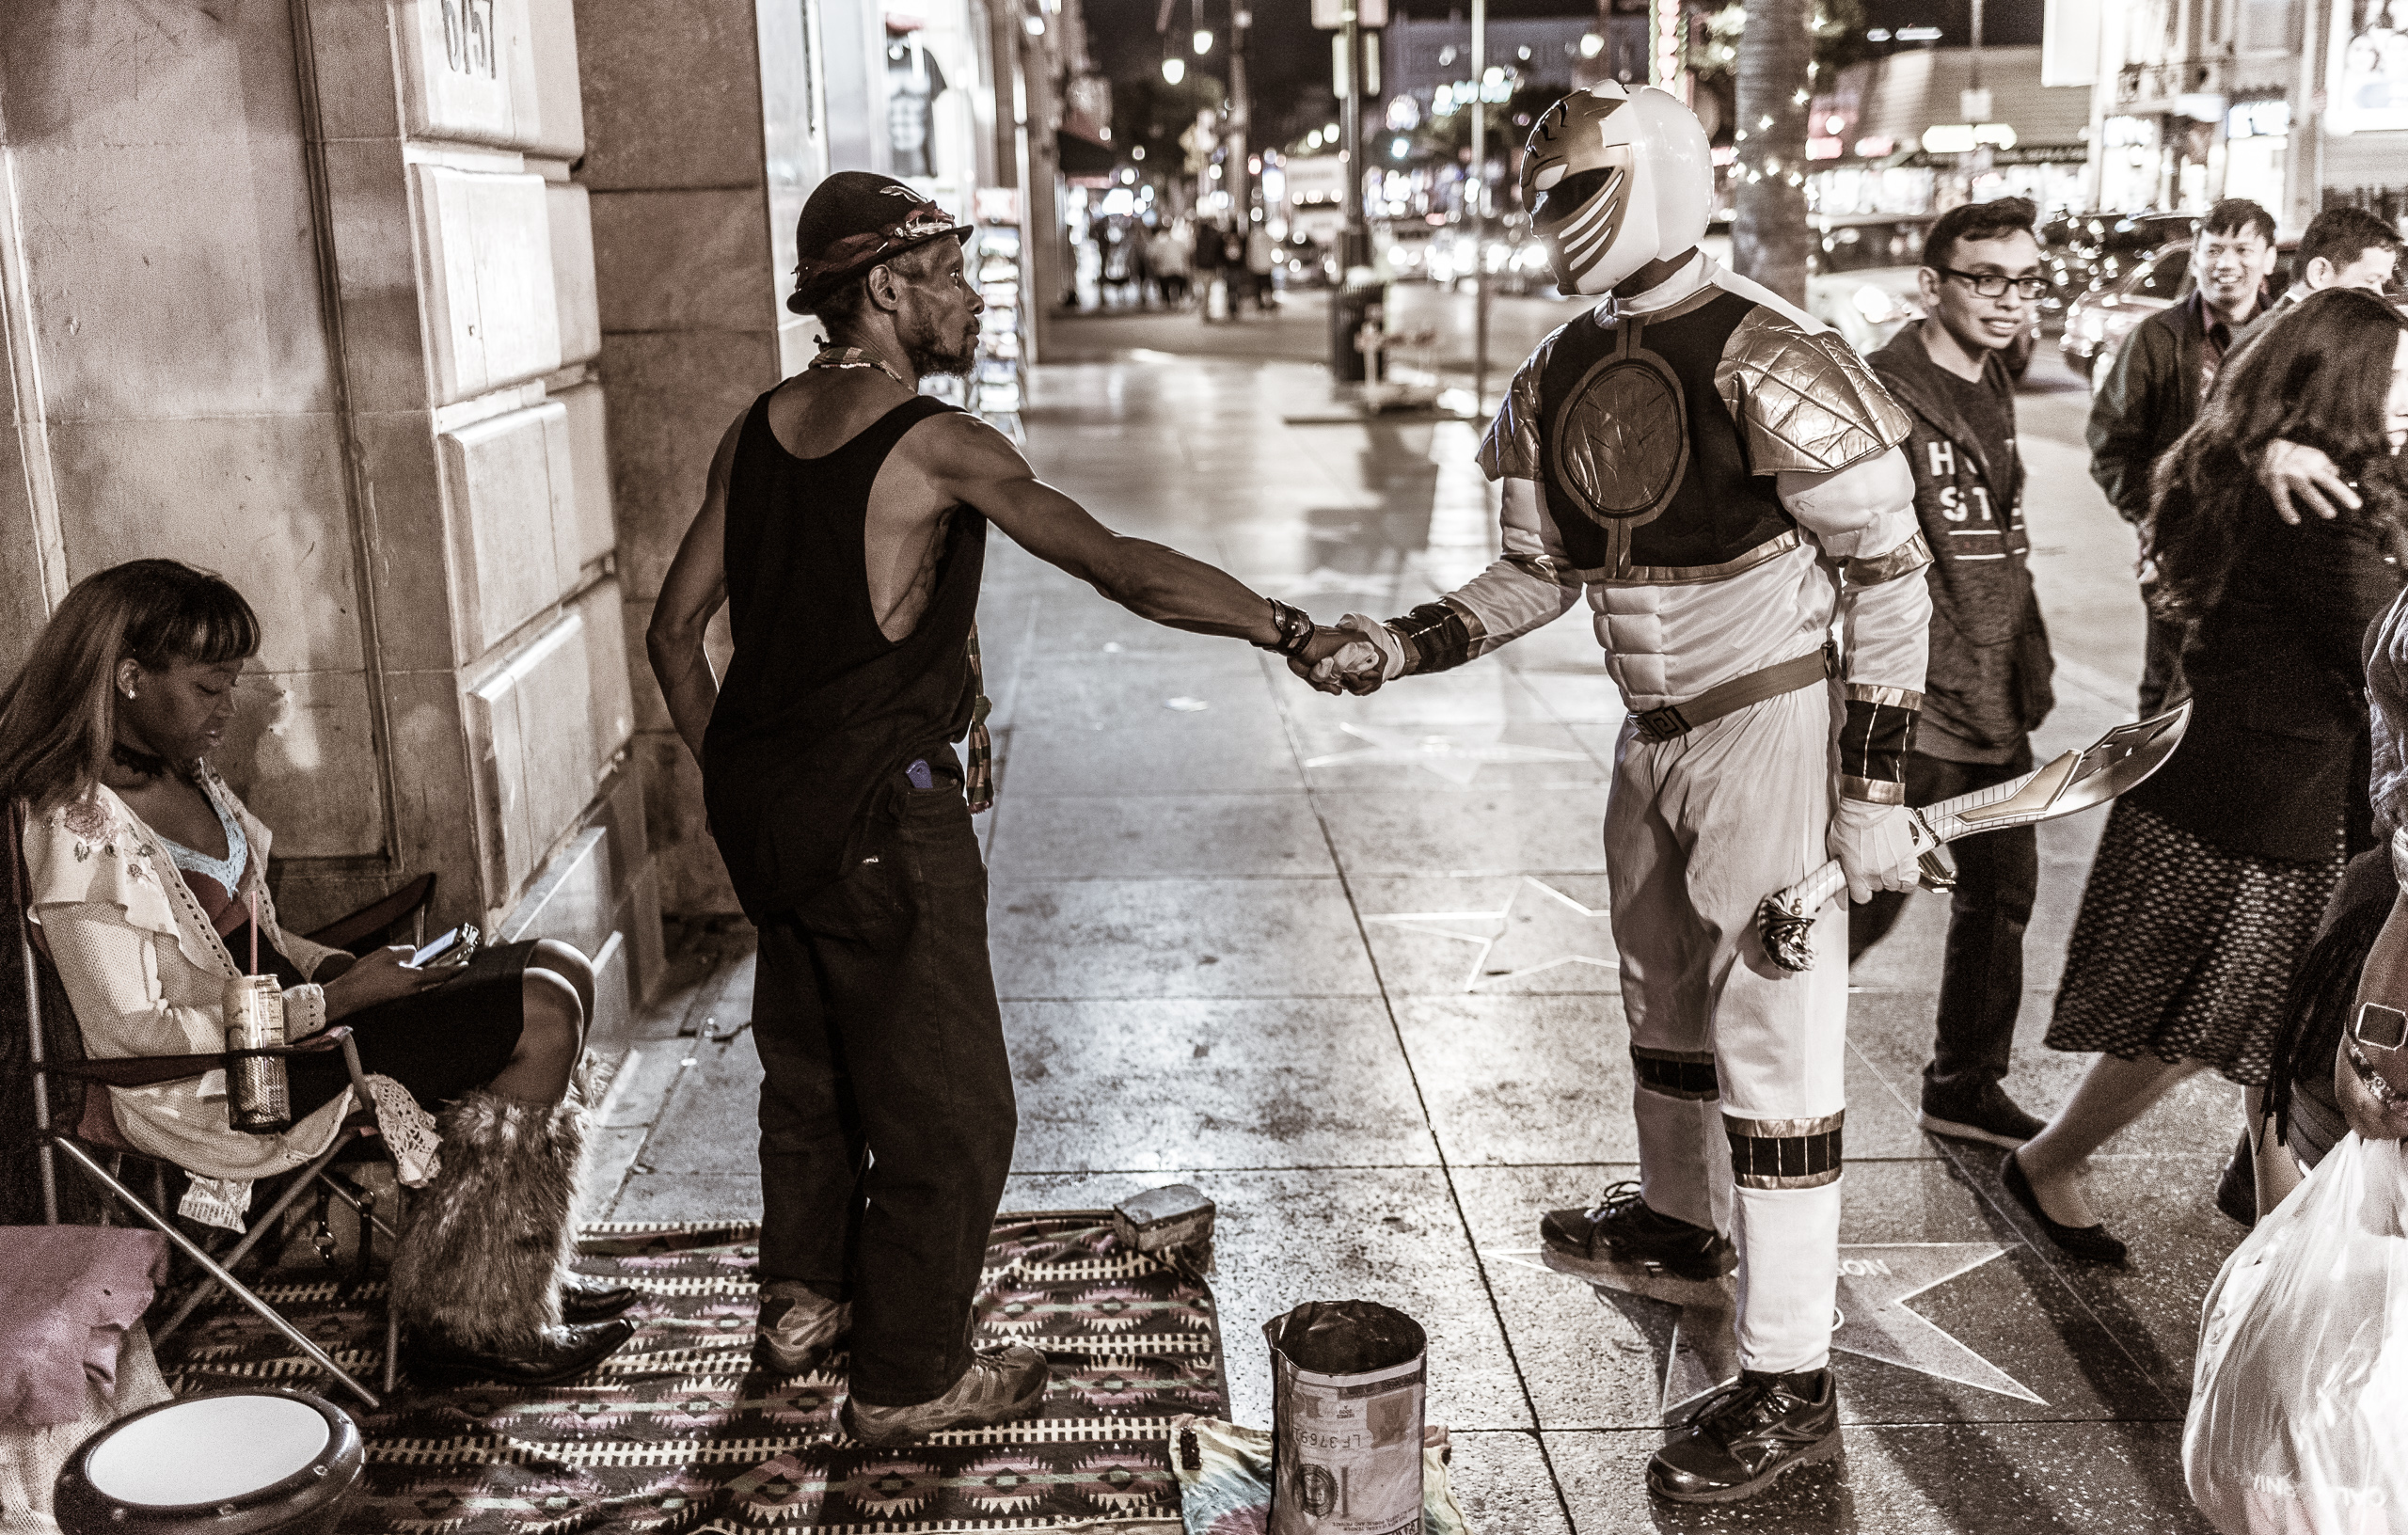 A man on Hollywood Blvd shakes hands with the White Power Ranger.